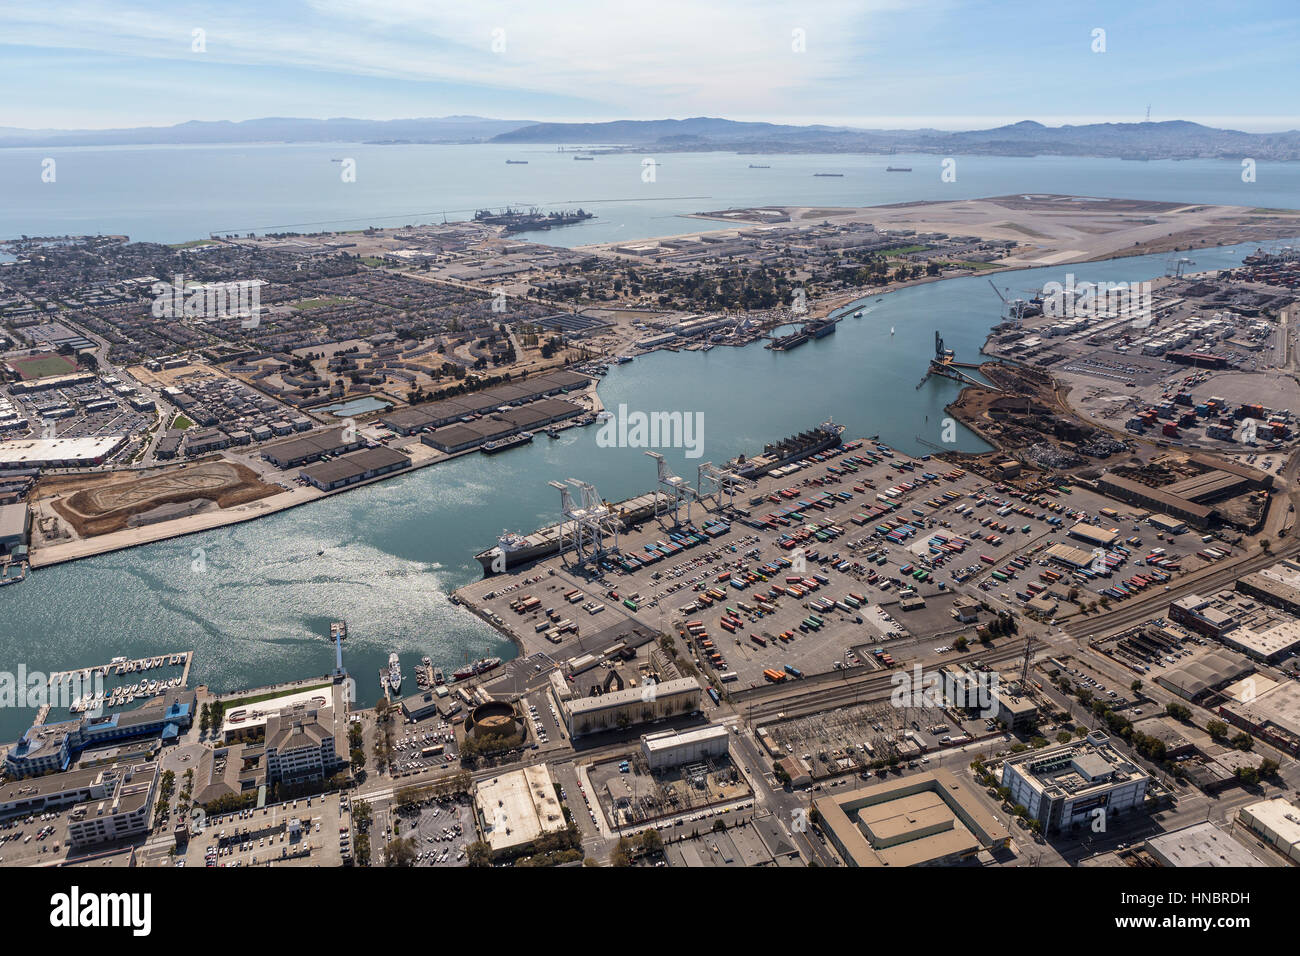 Oakland, California, USA - September 19, 2016:  Aerial view of the Port of Oakland, Alameda Island and San Francisco - Stock Image